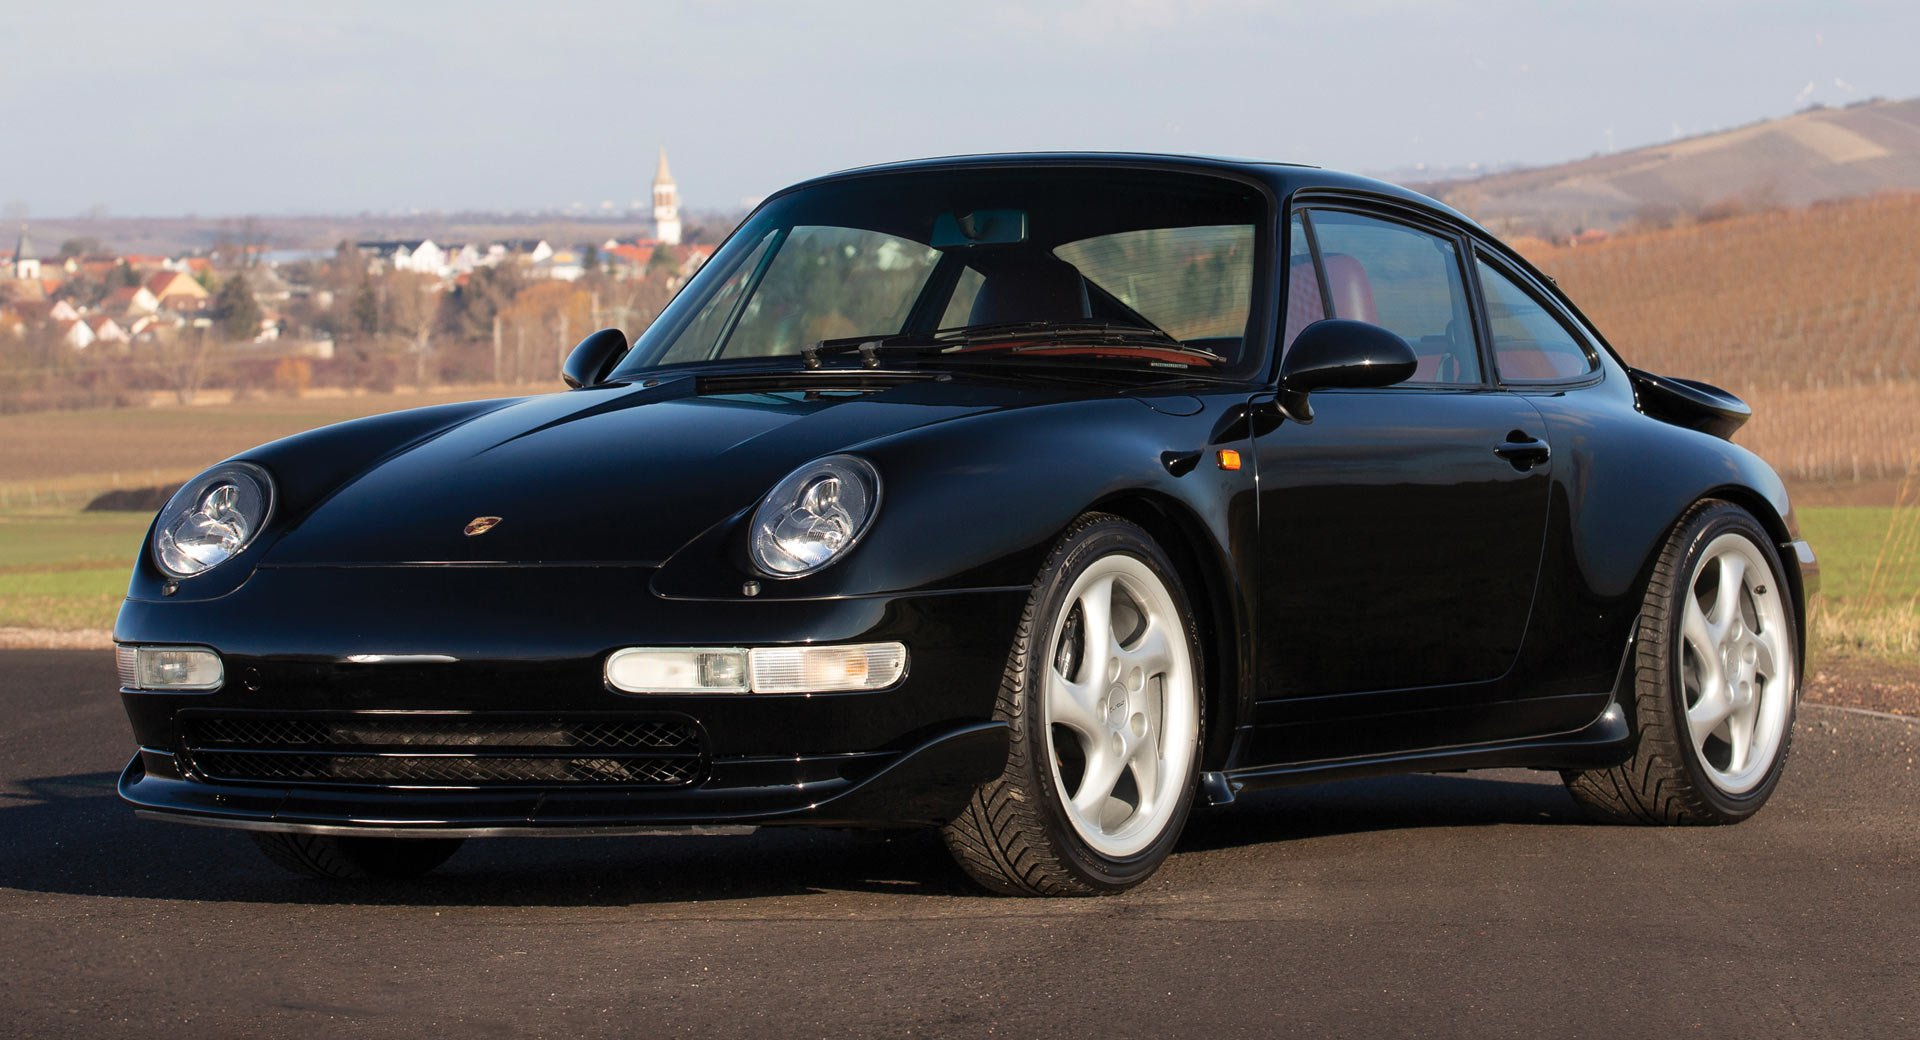 Porsche 911 Turbo Prototype auction (1)